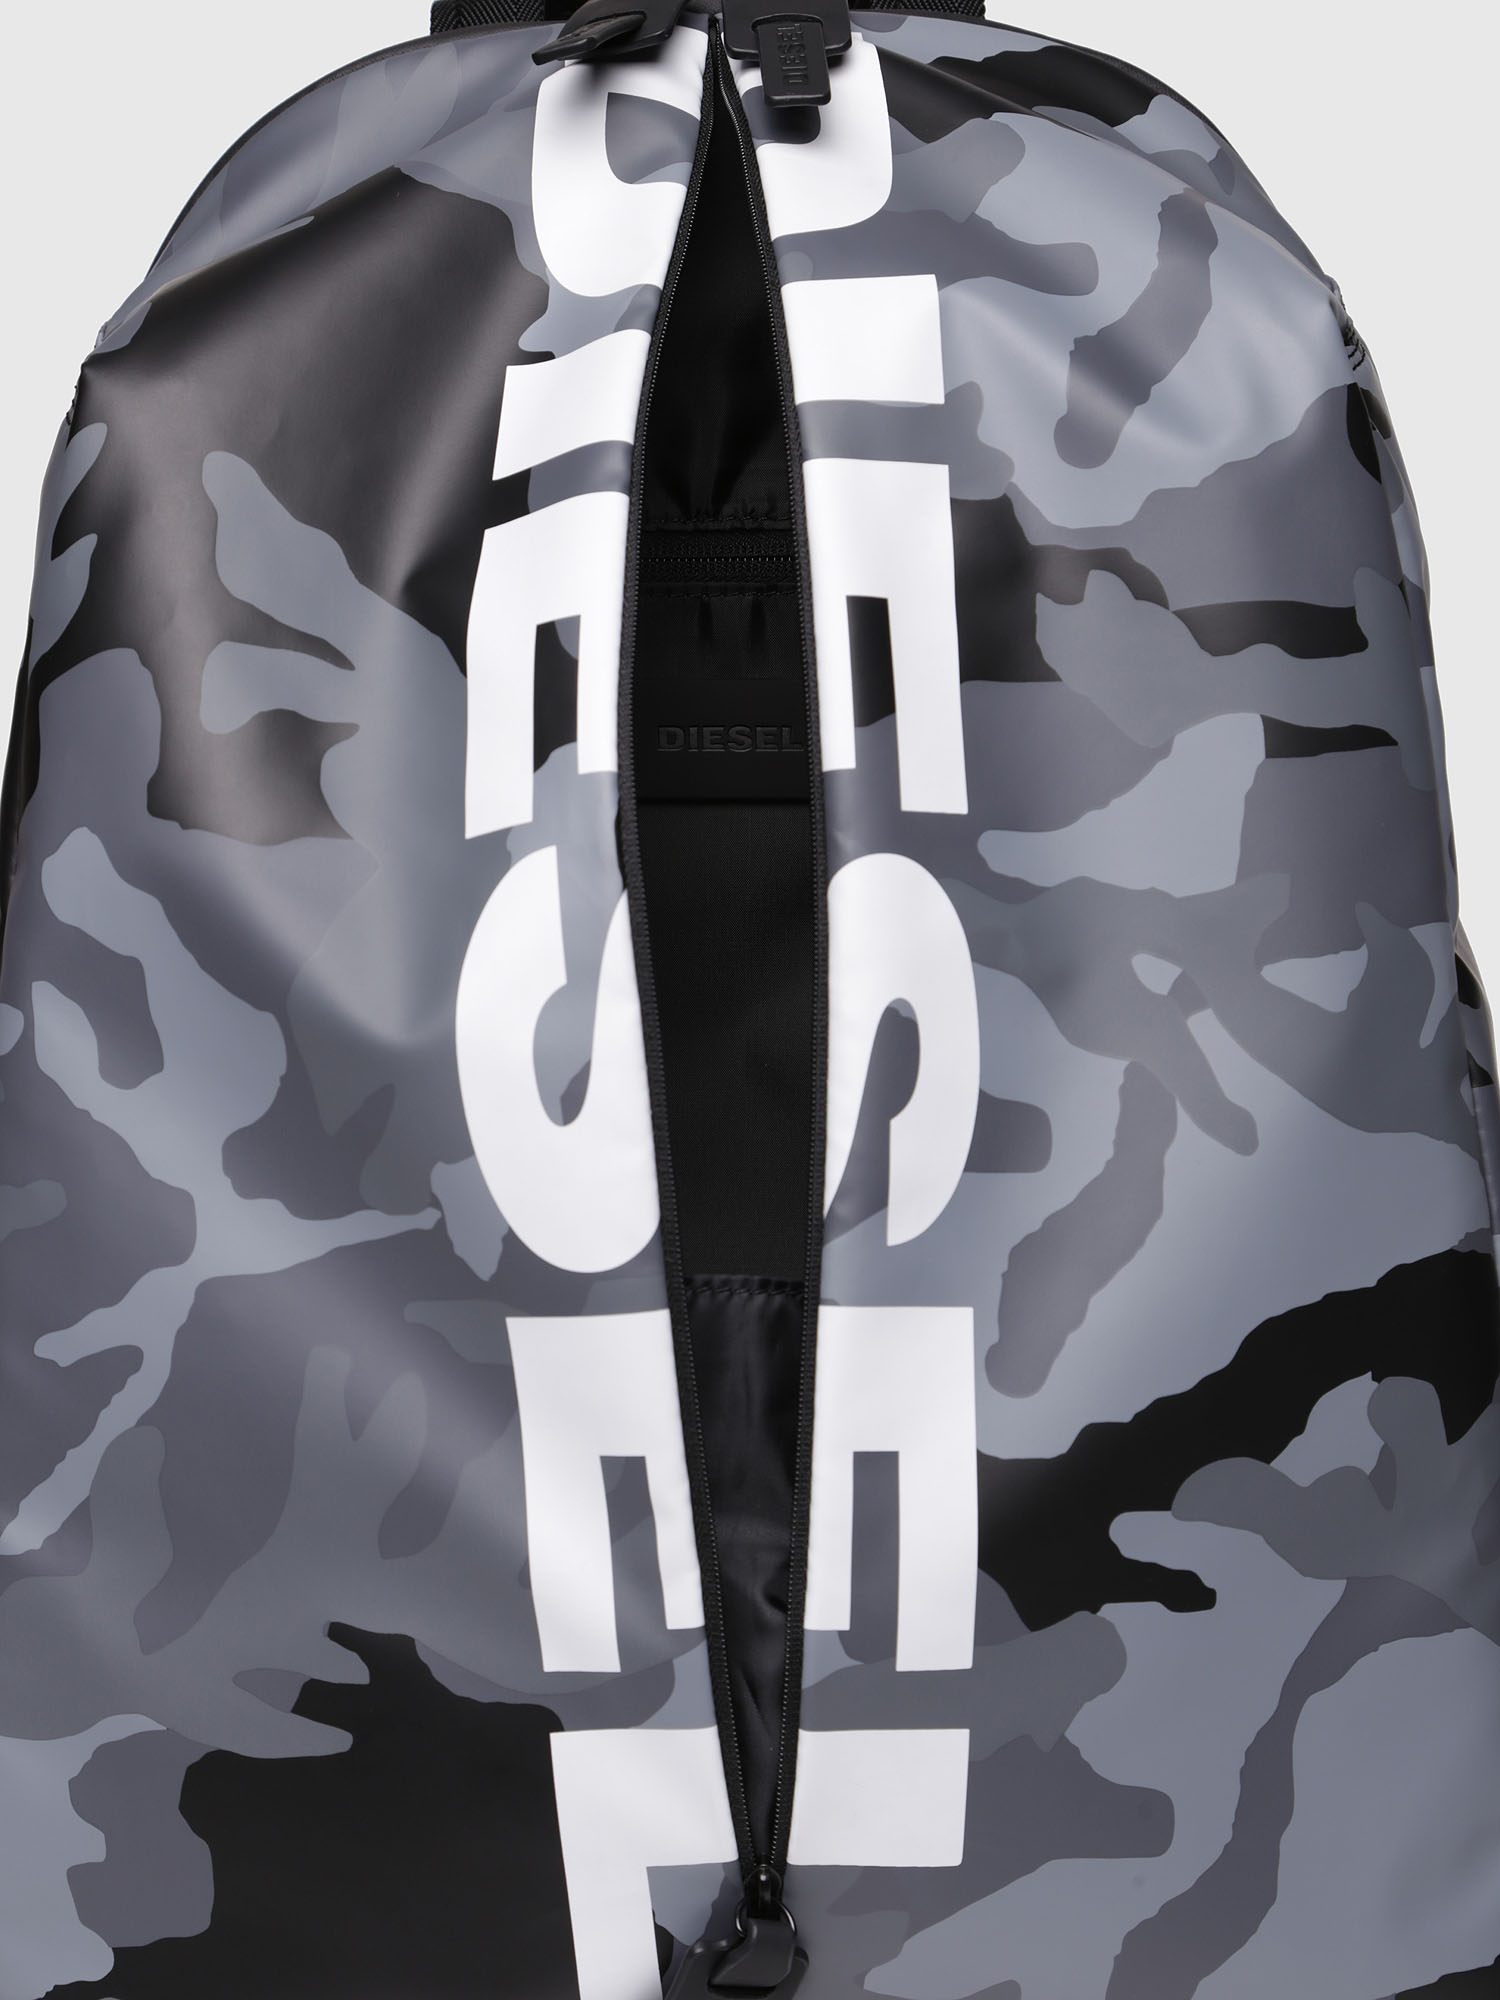 Diesel - F-BOLD BACK,  - Backpacks - Image 4